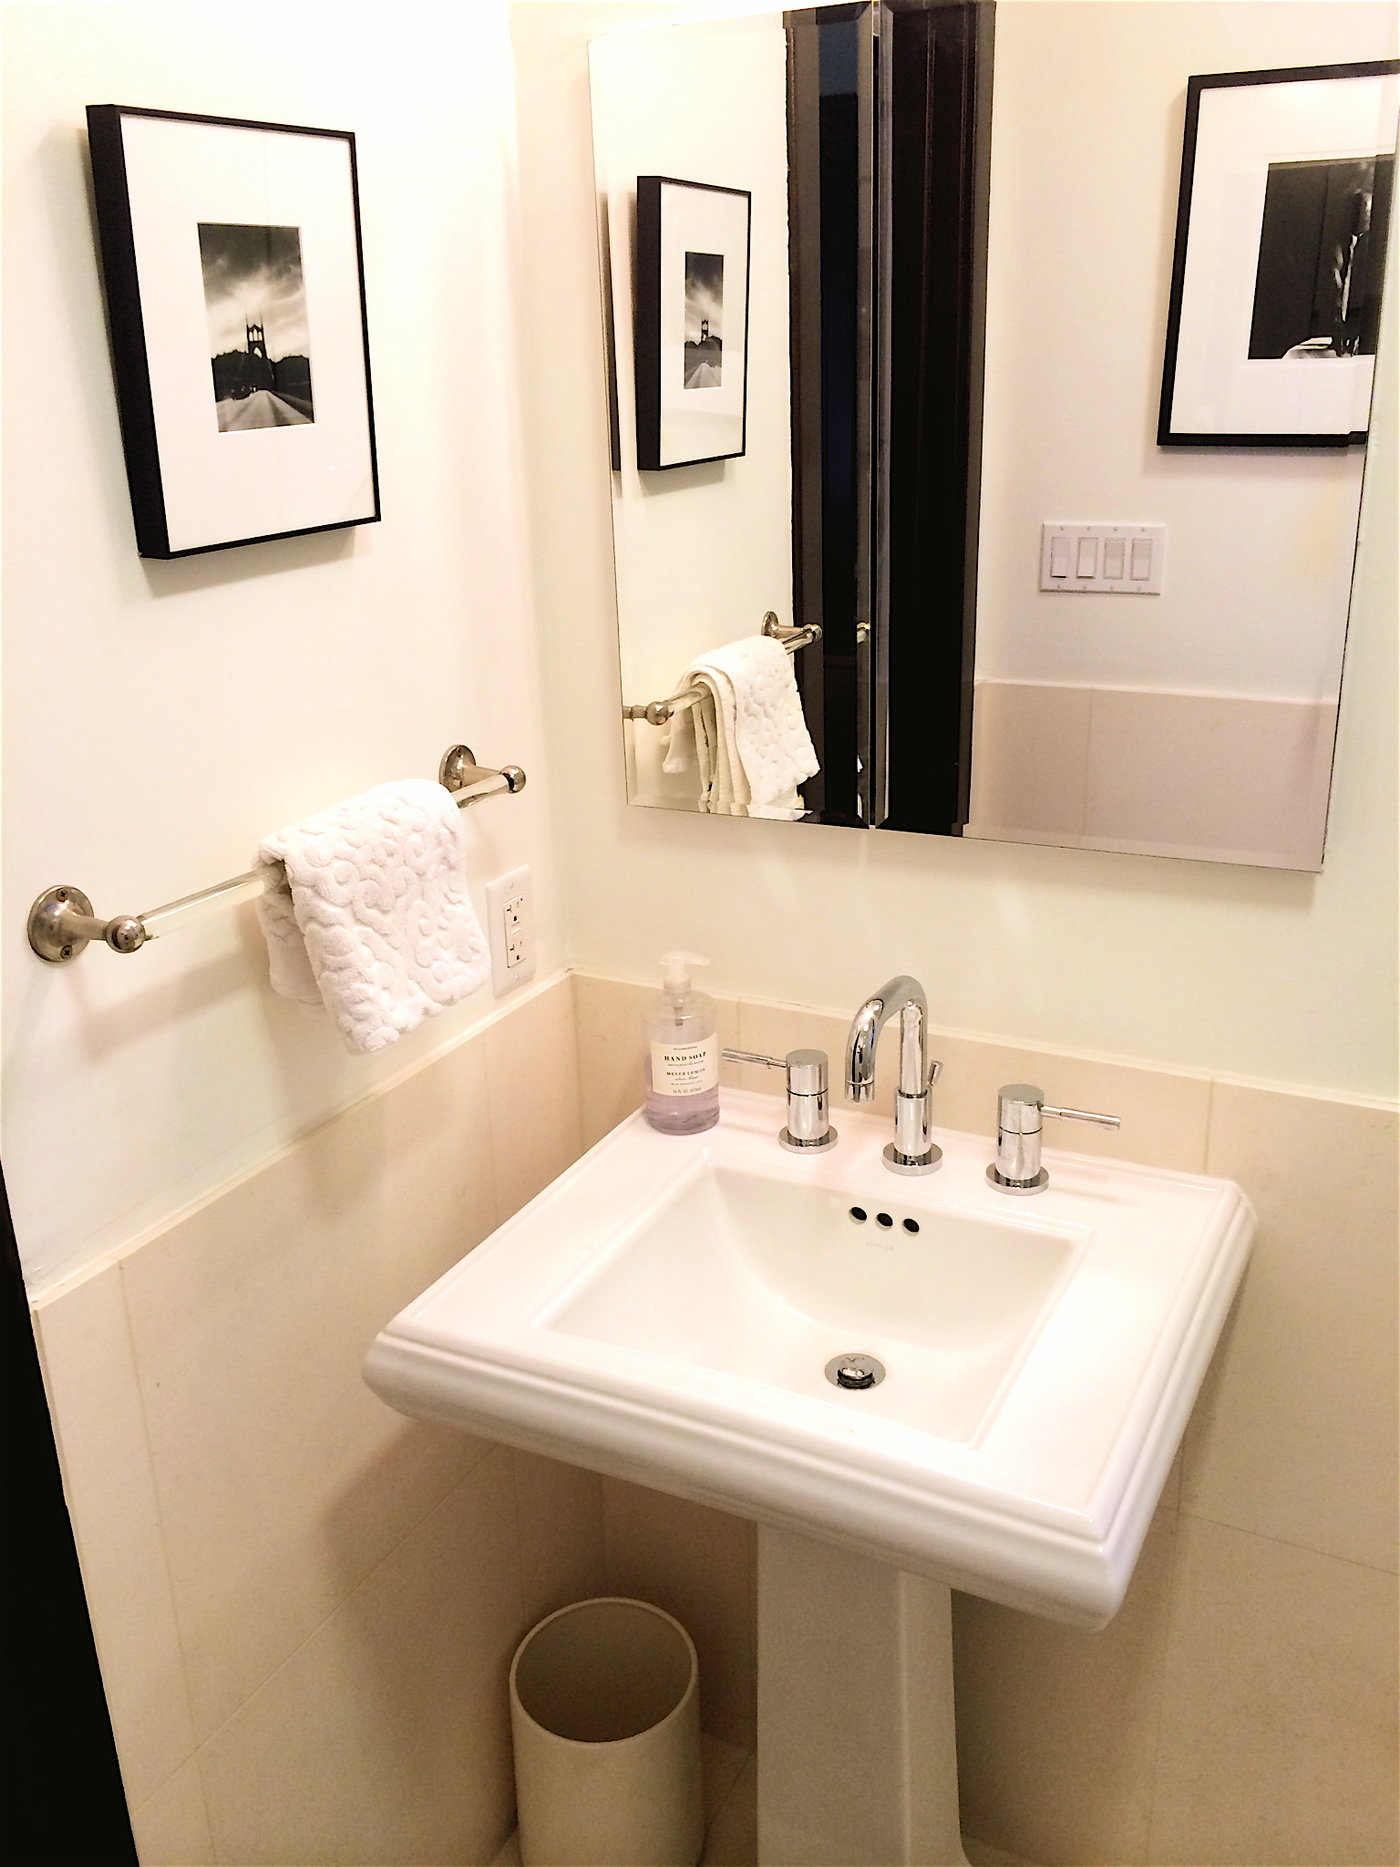 Guest Bathroom Remodel By Barbara Lee At Coroflot Com